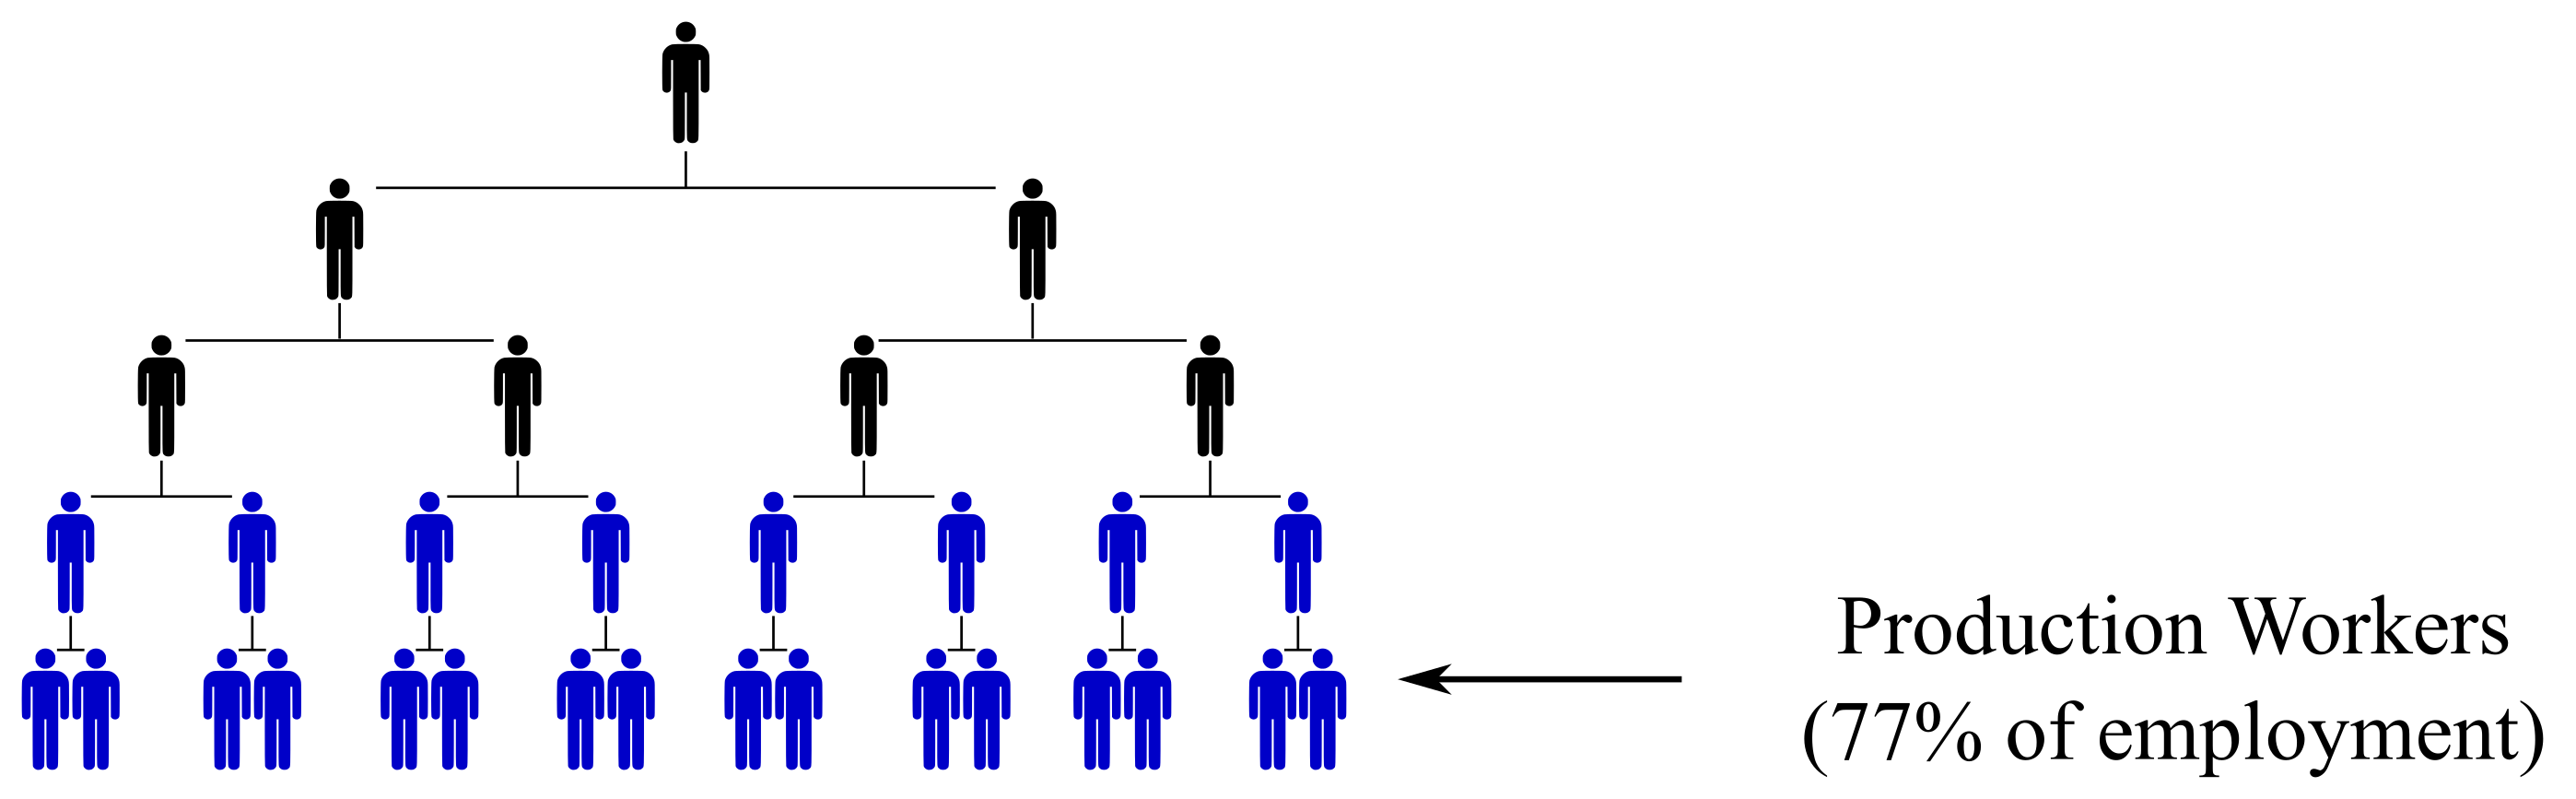 hierarchy_production_workers